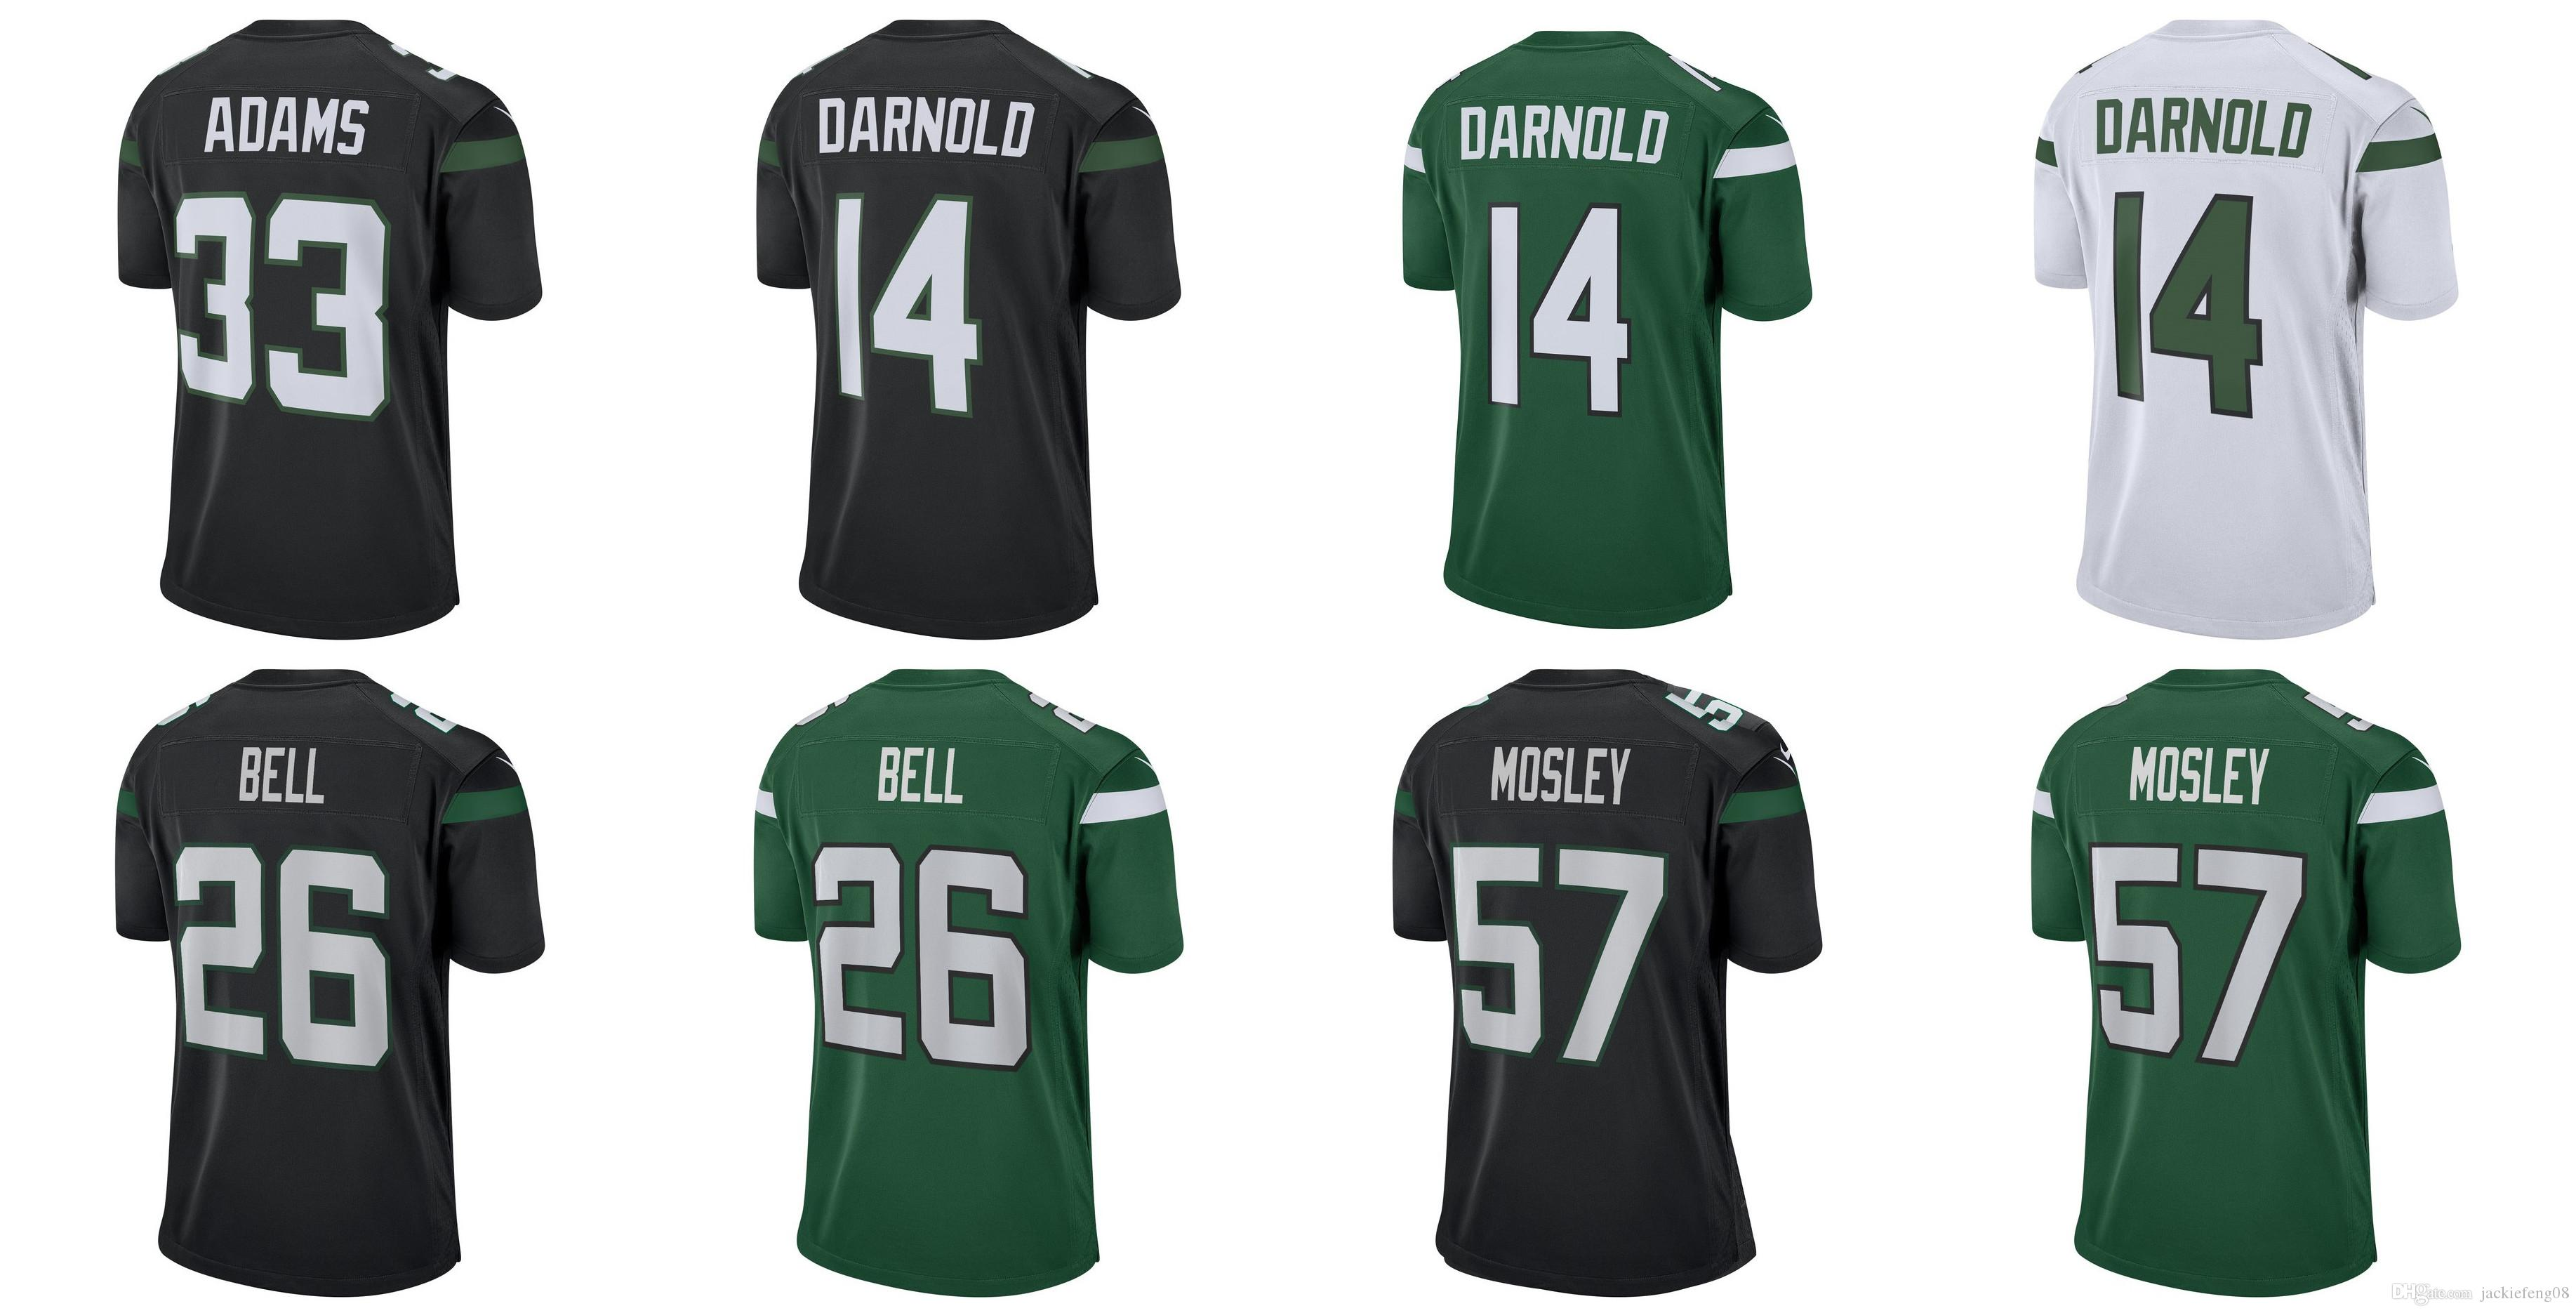 reputable site 81e21 16569 26 Bell jerseys 57 mosley Jets 14 Sam Darnold jersey new 2019 New York 33  Jamal Adams